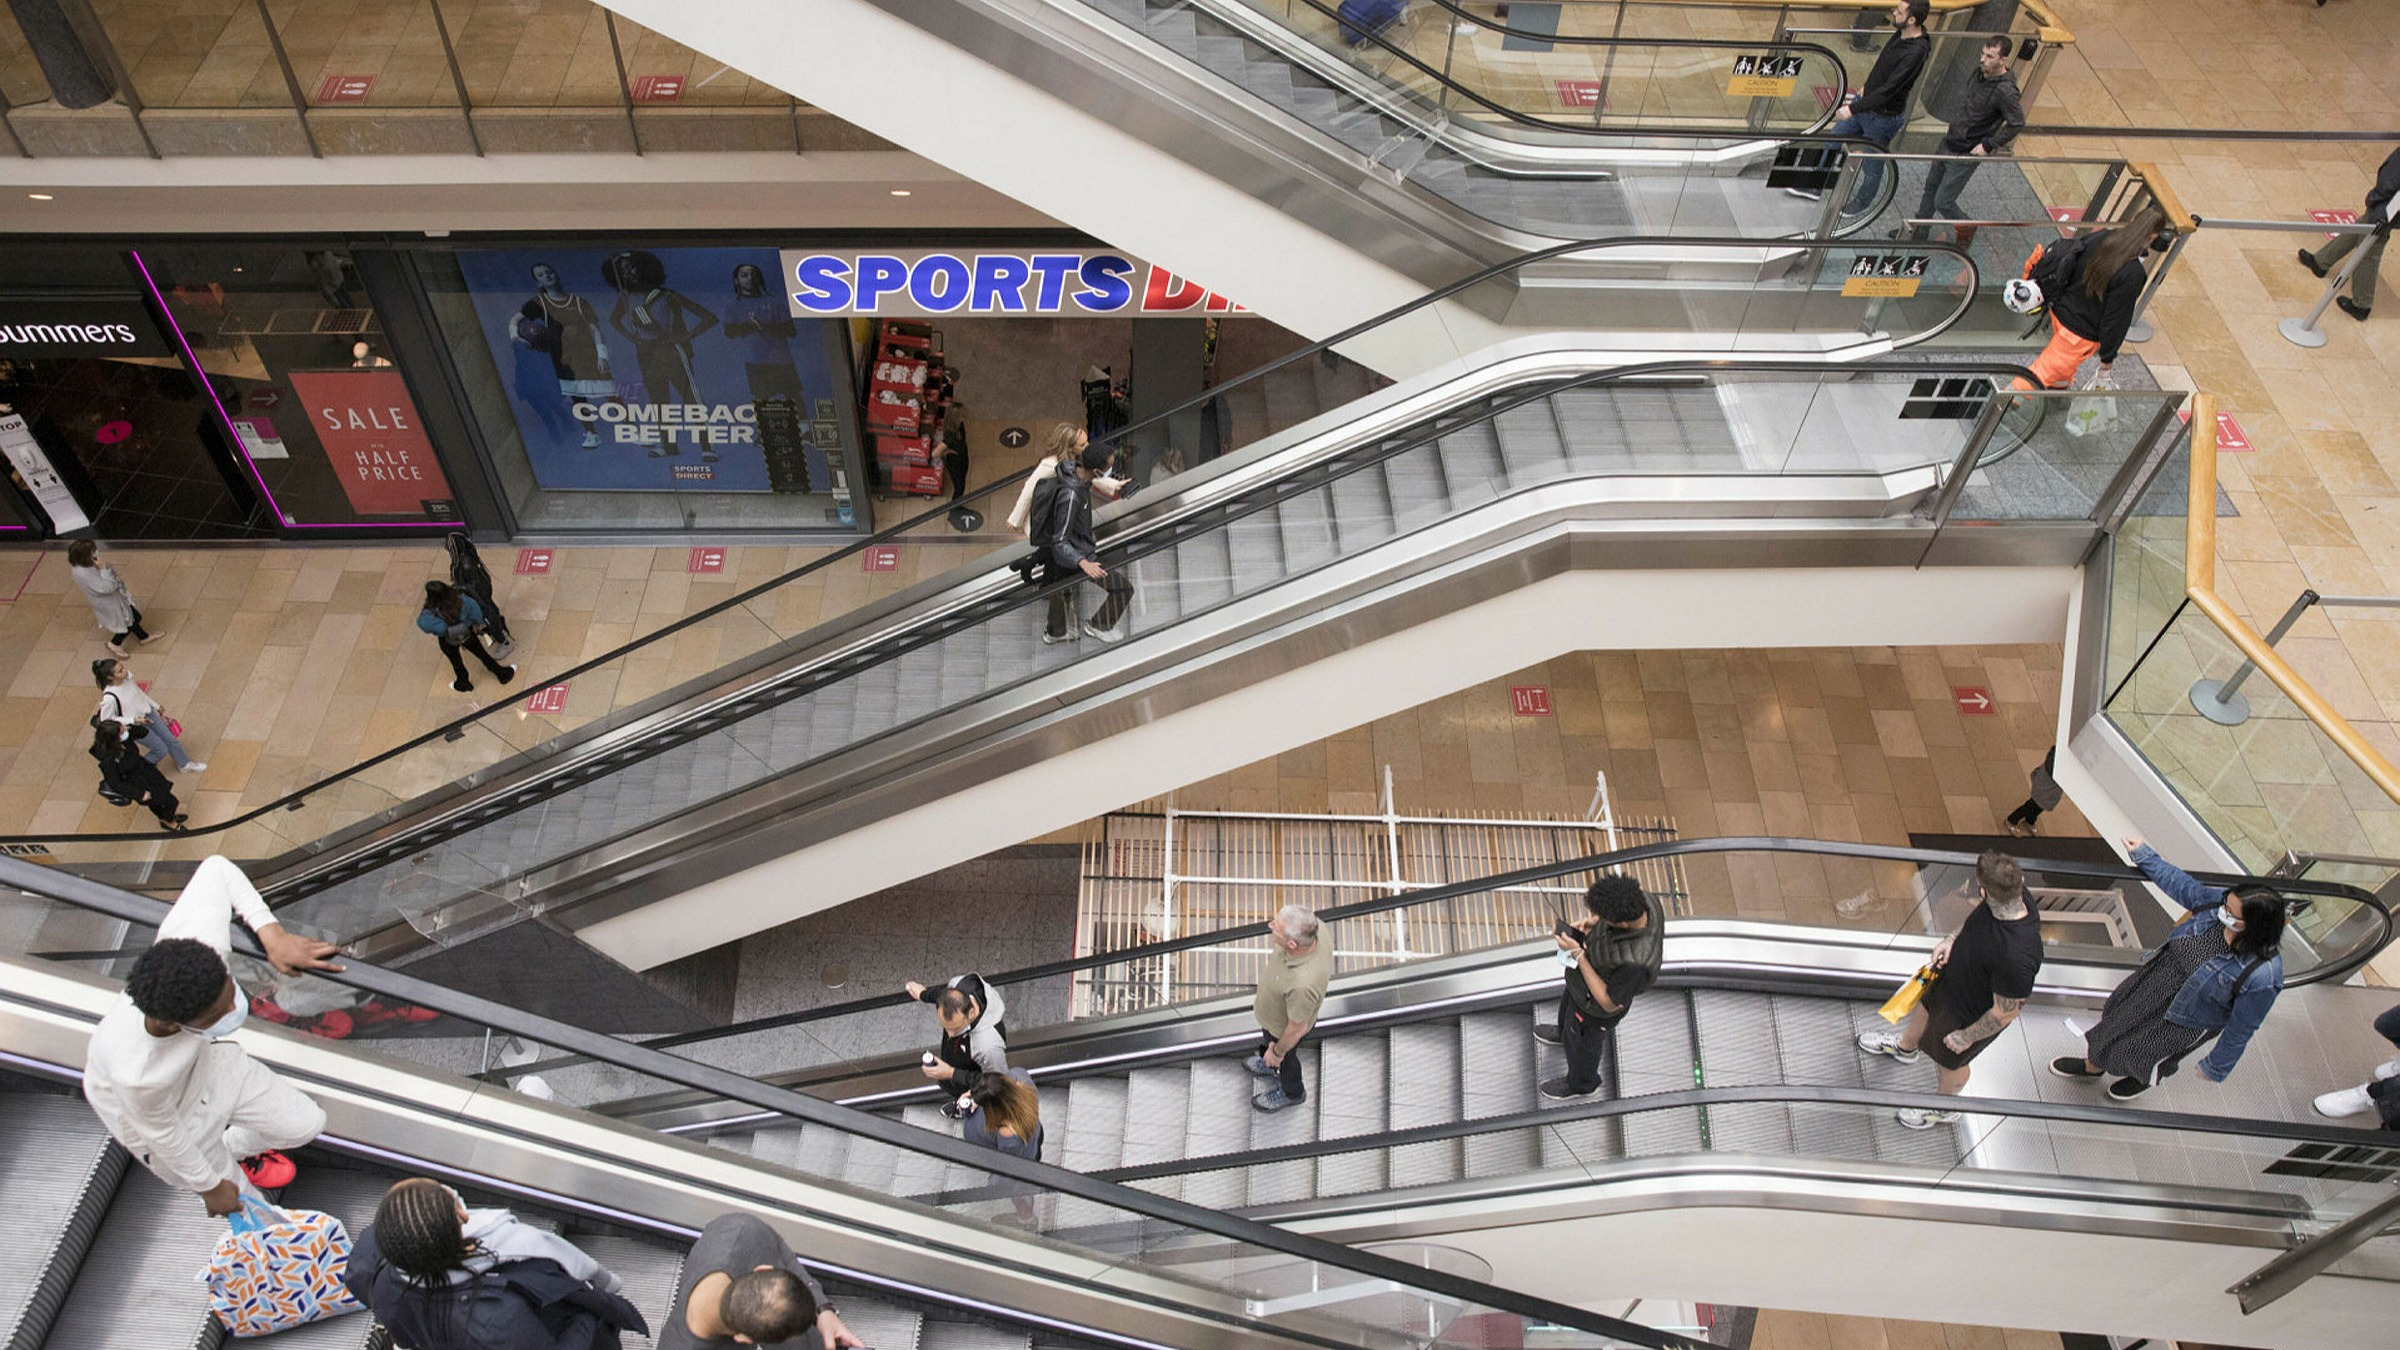 ft.com - George Hammond - Hammerson collects less than half its rent from retailers